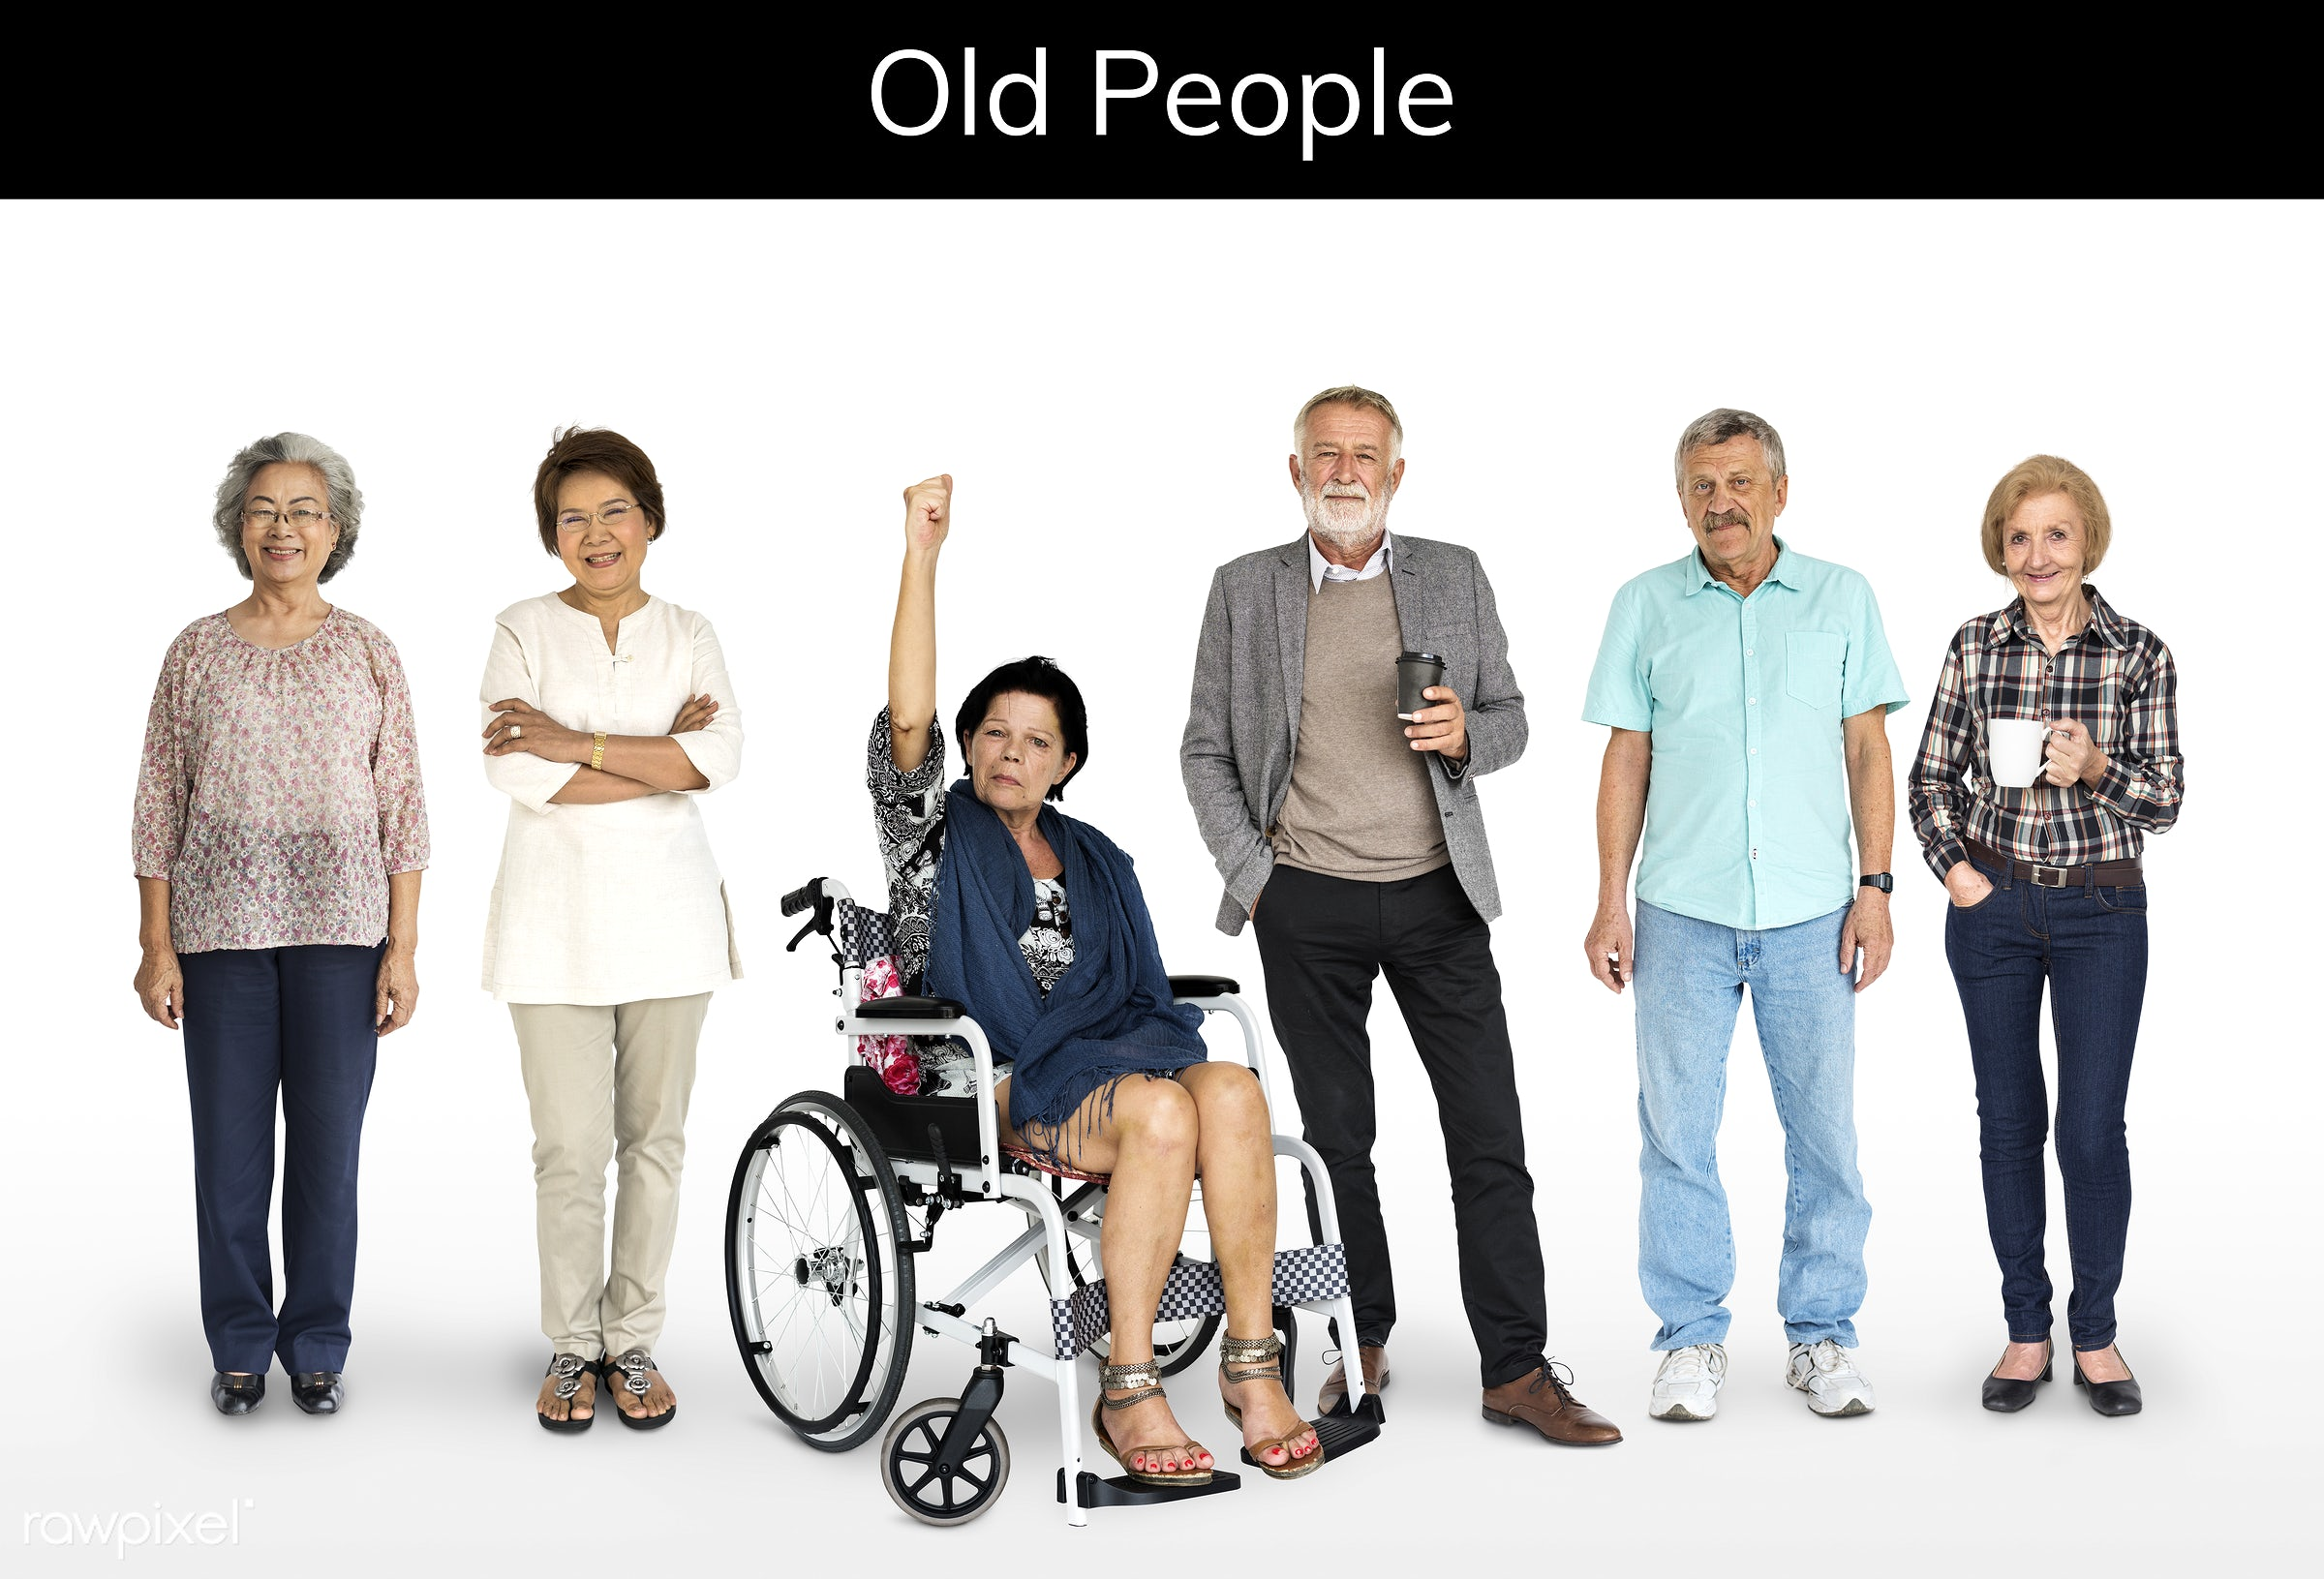 studio, old, person, diverse, set, retired, retire, collection, people, together, asian, retirement, life, woman, lifestyle...